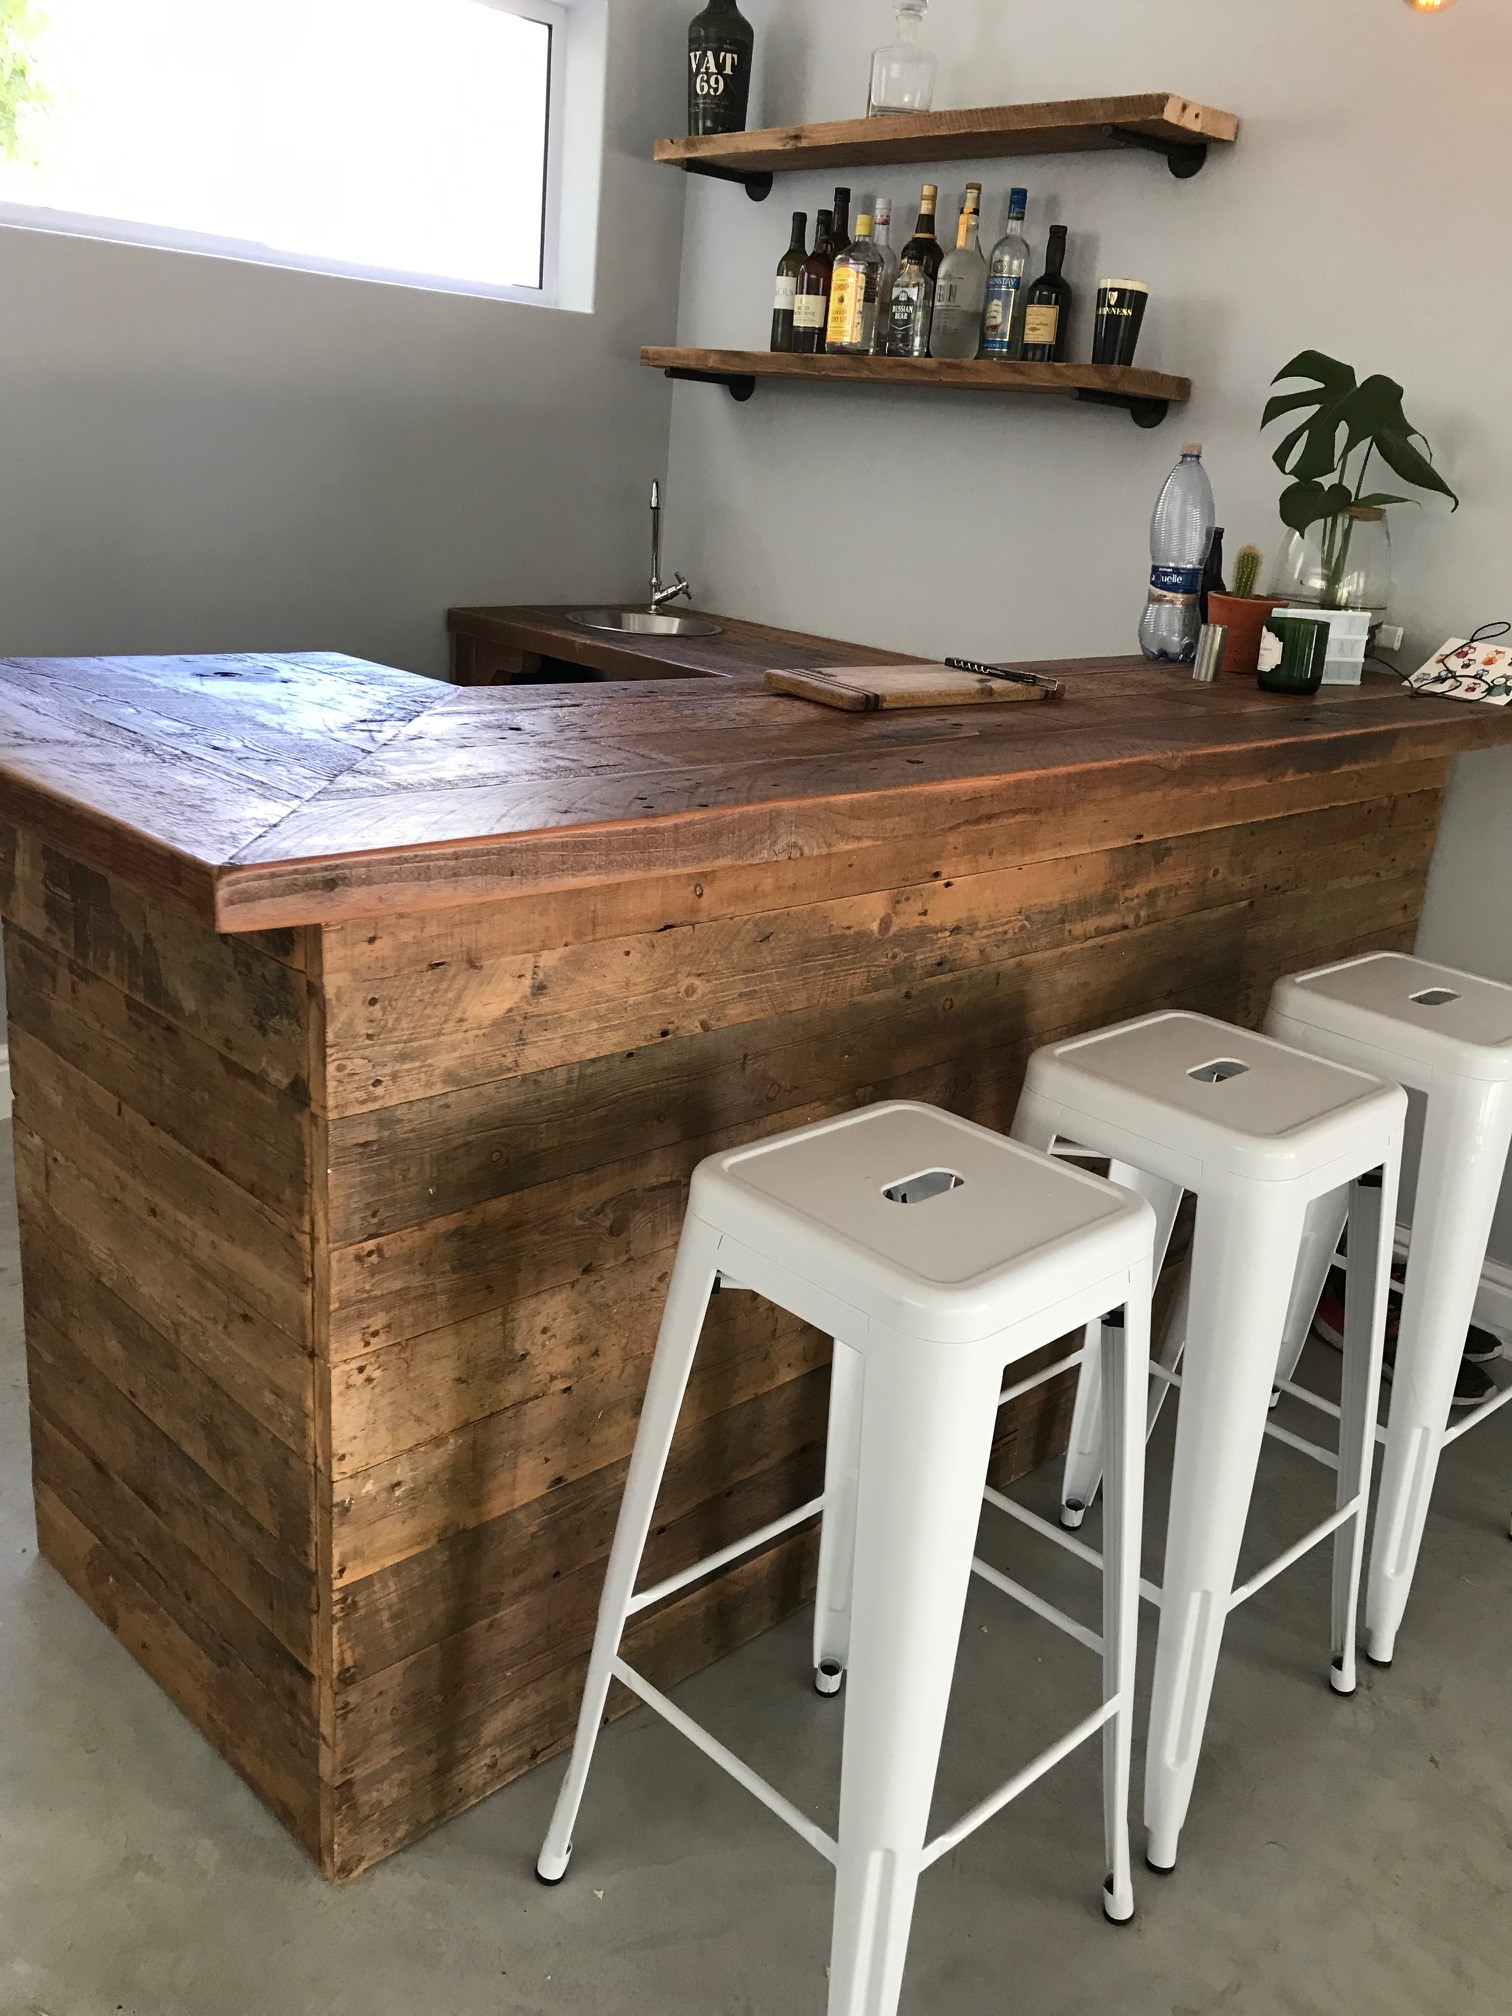 Home bar in recycled Oregon